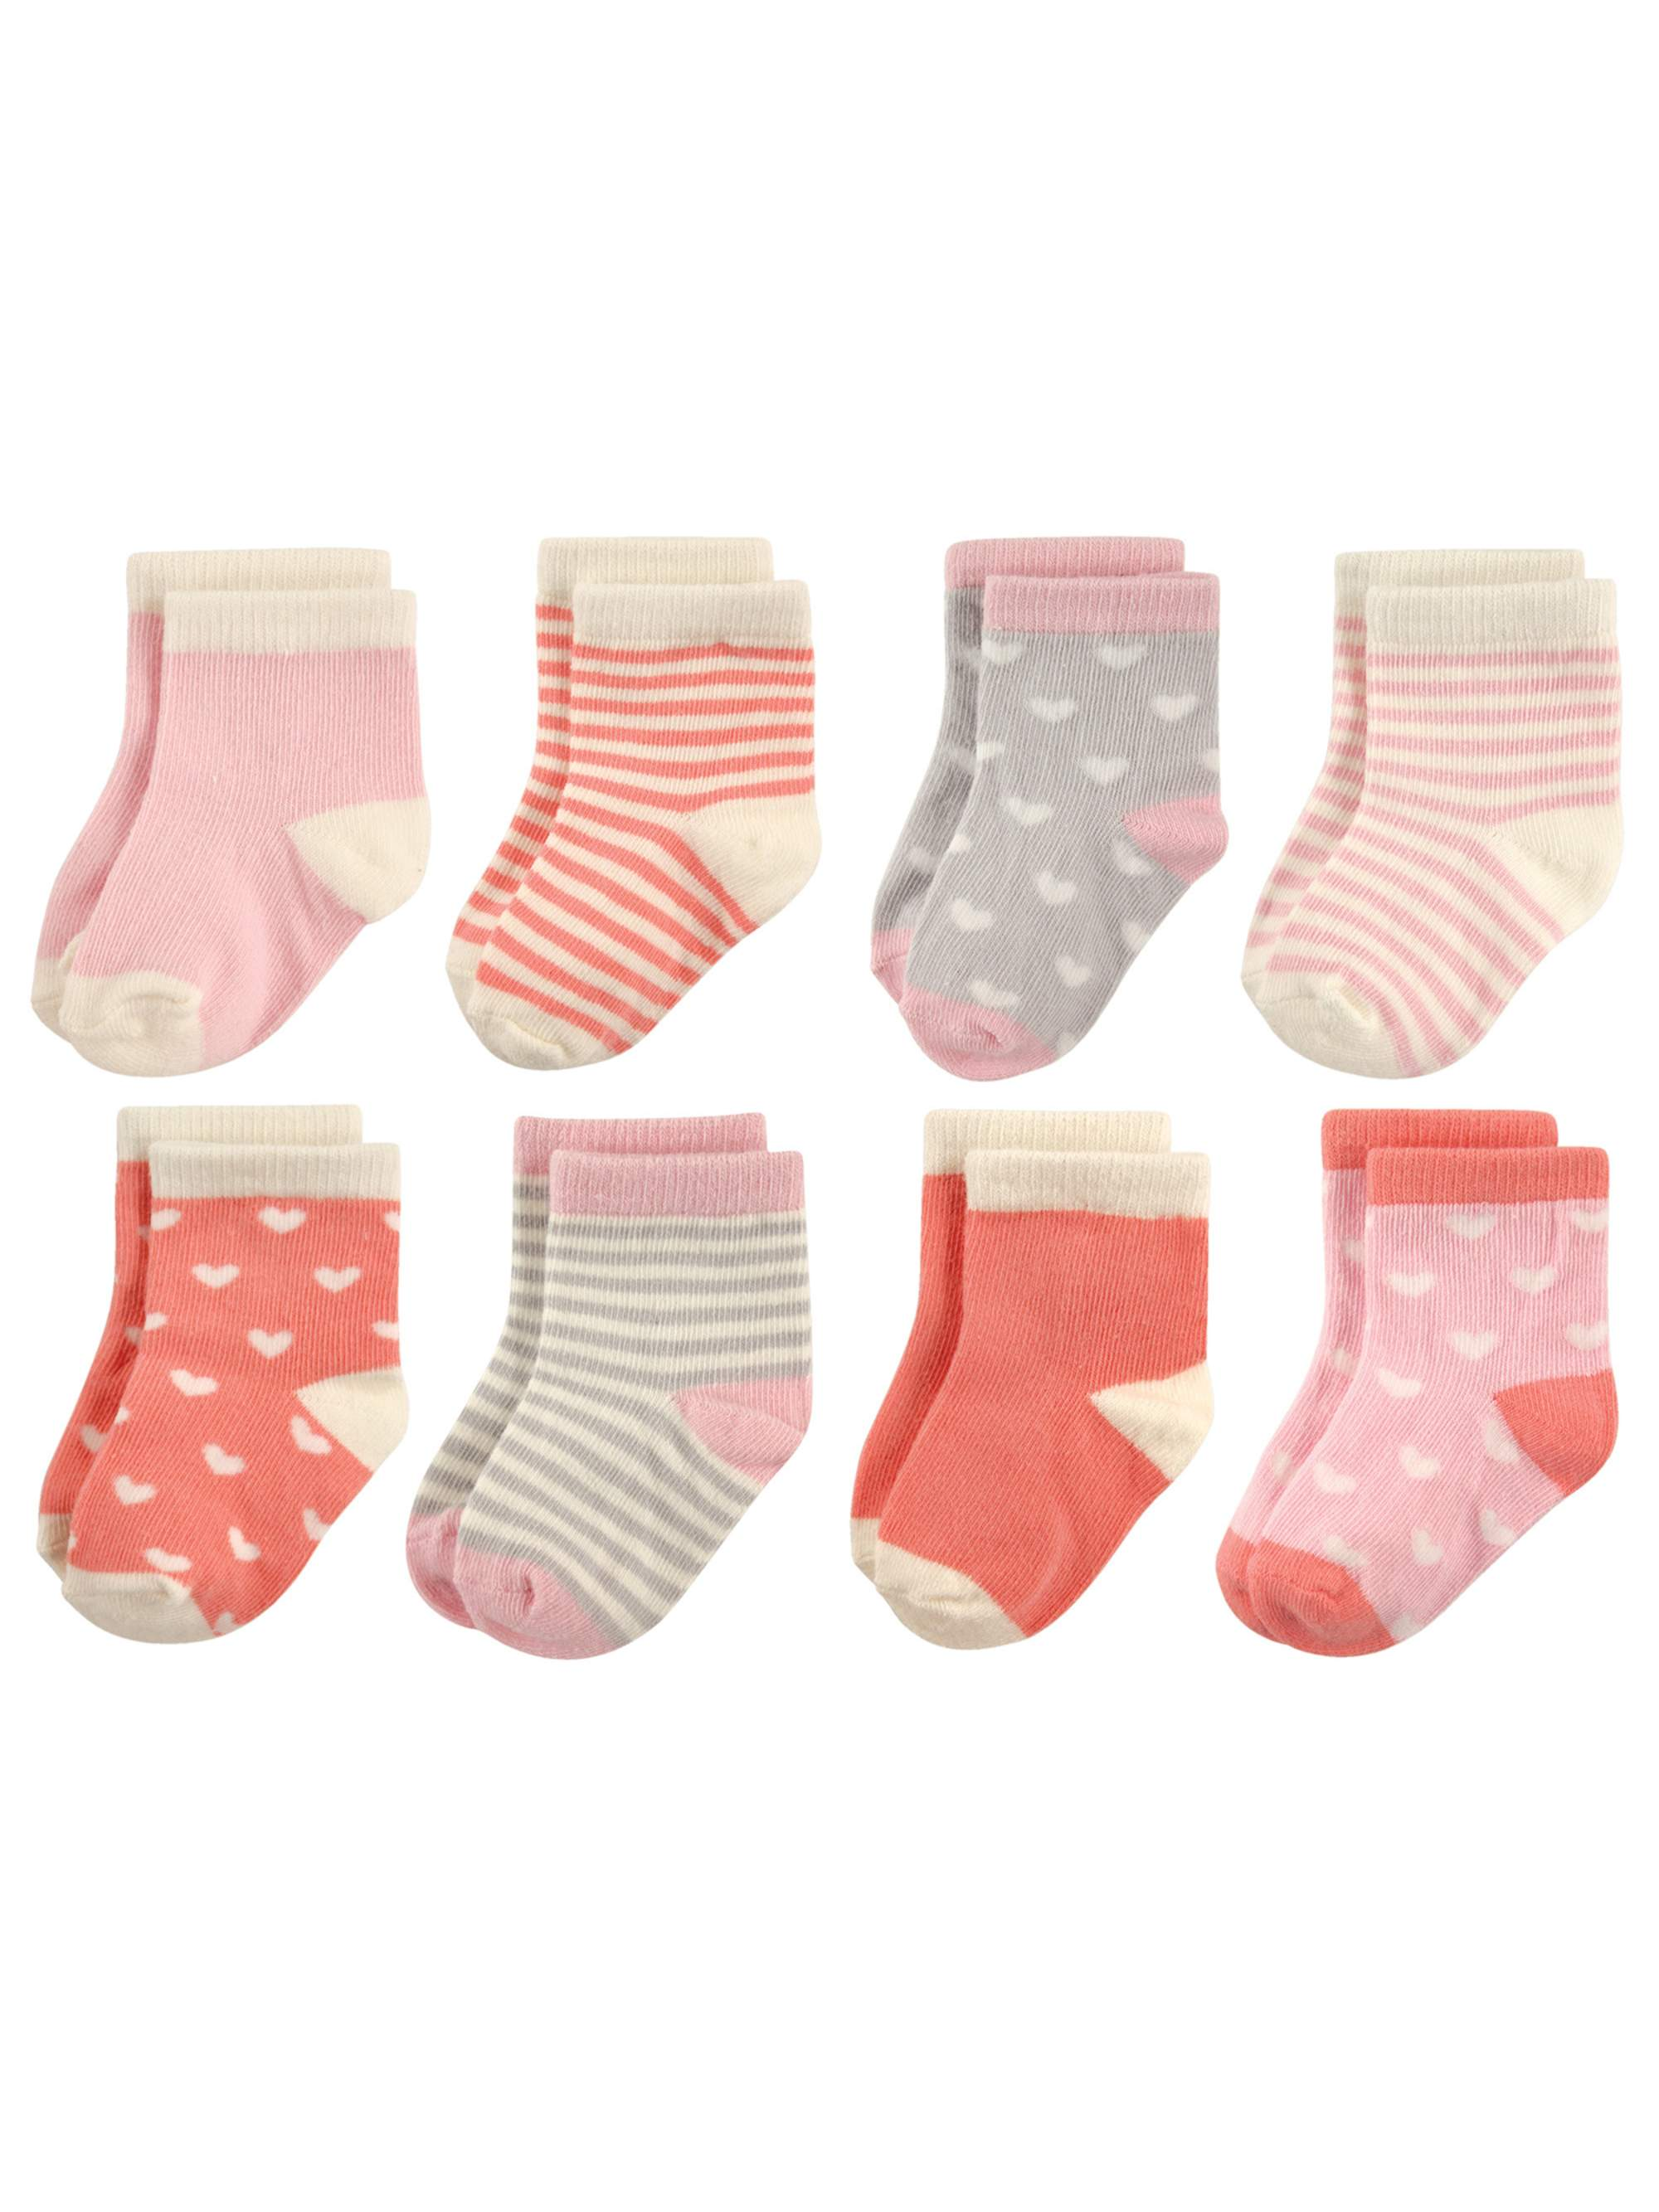 Patterned Crew Socks, 8-Pack (Baby Girls & Toddler Girls)